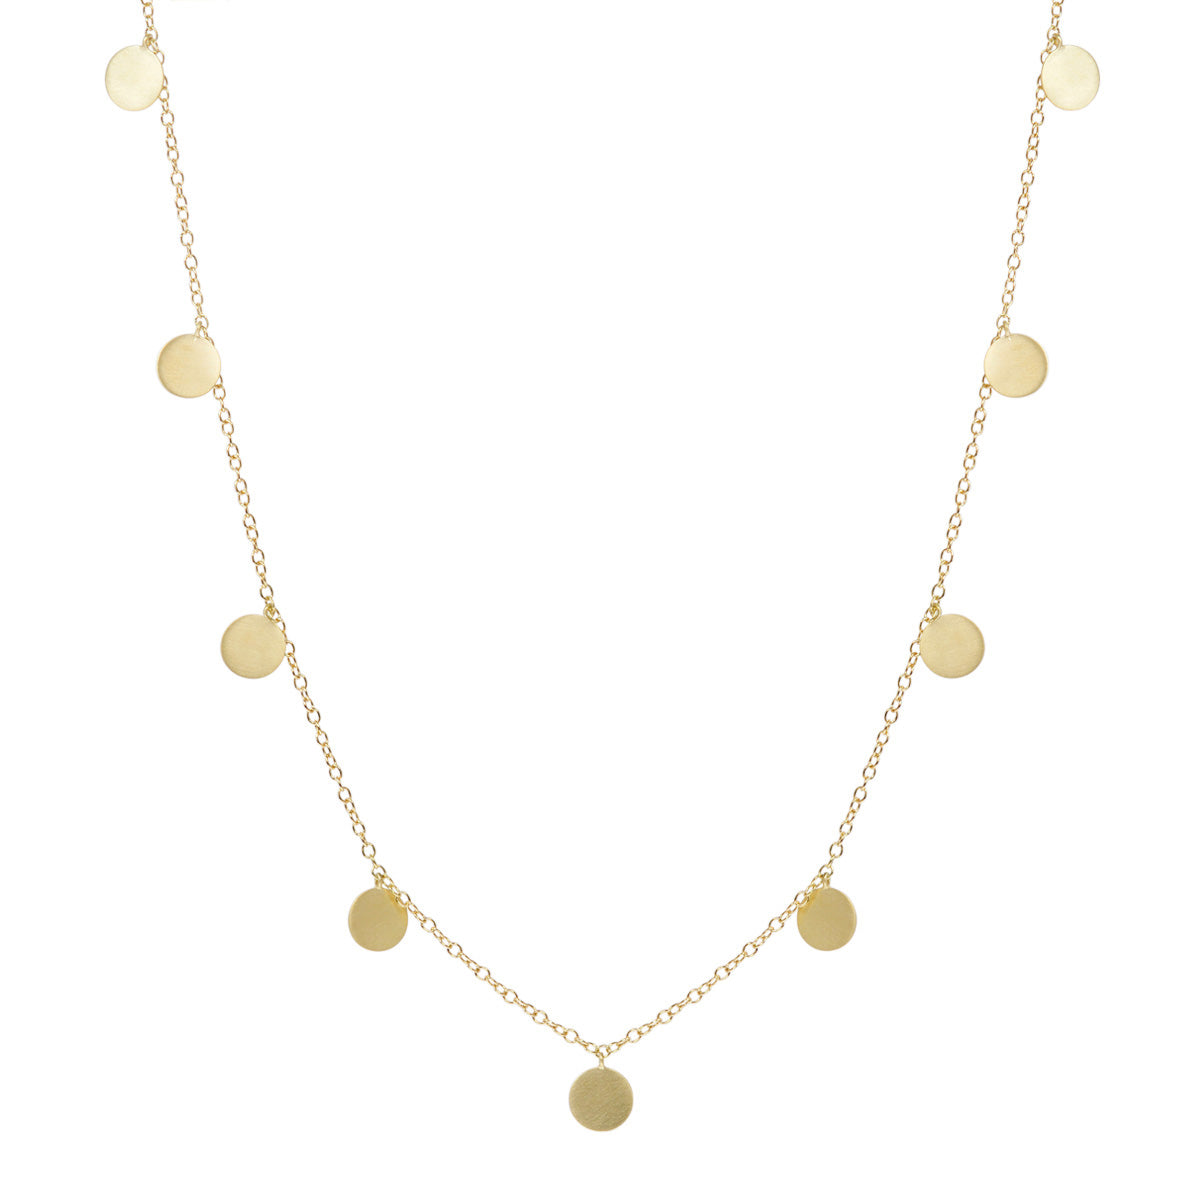 18K Gold Long Medium Disc Necklace